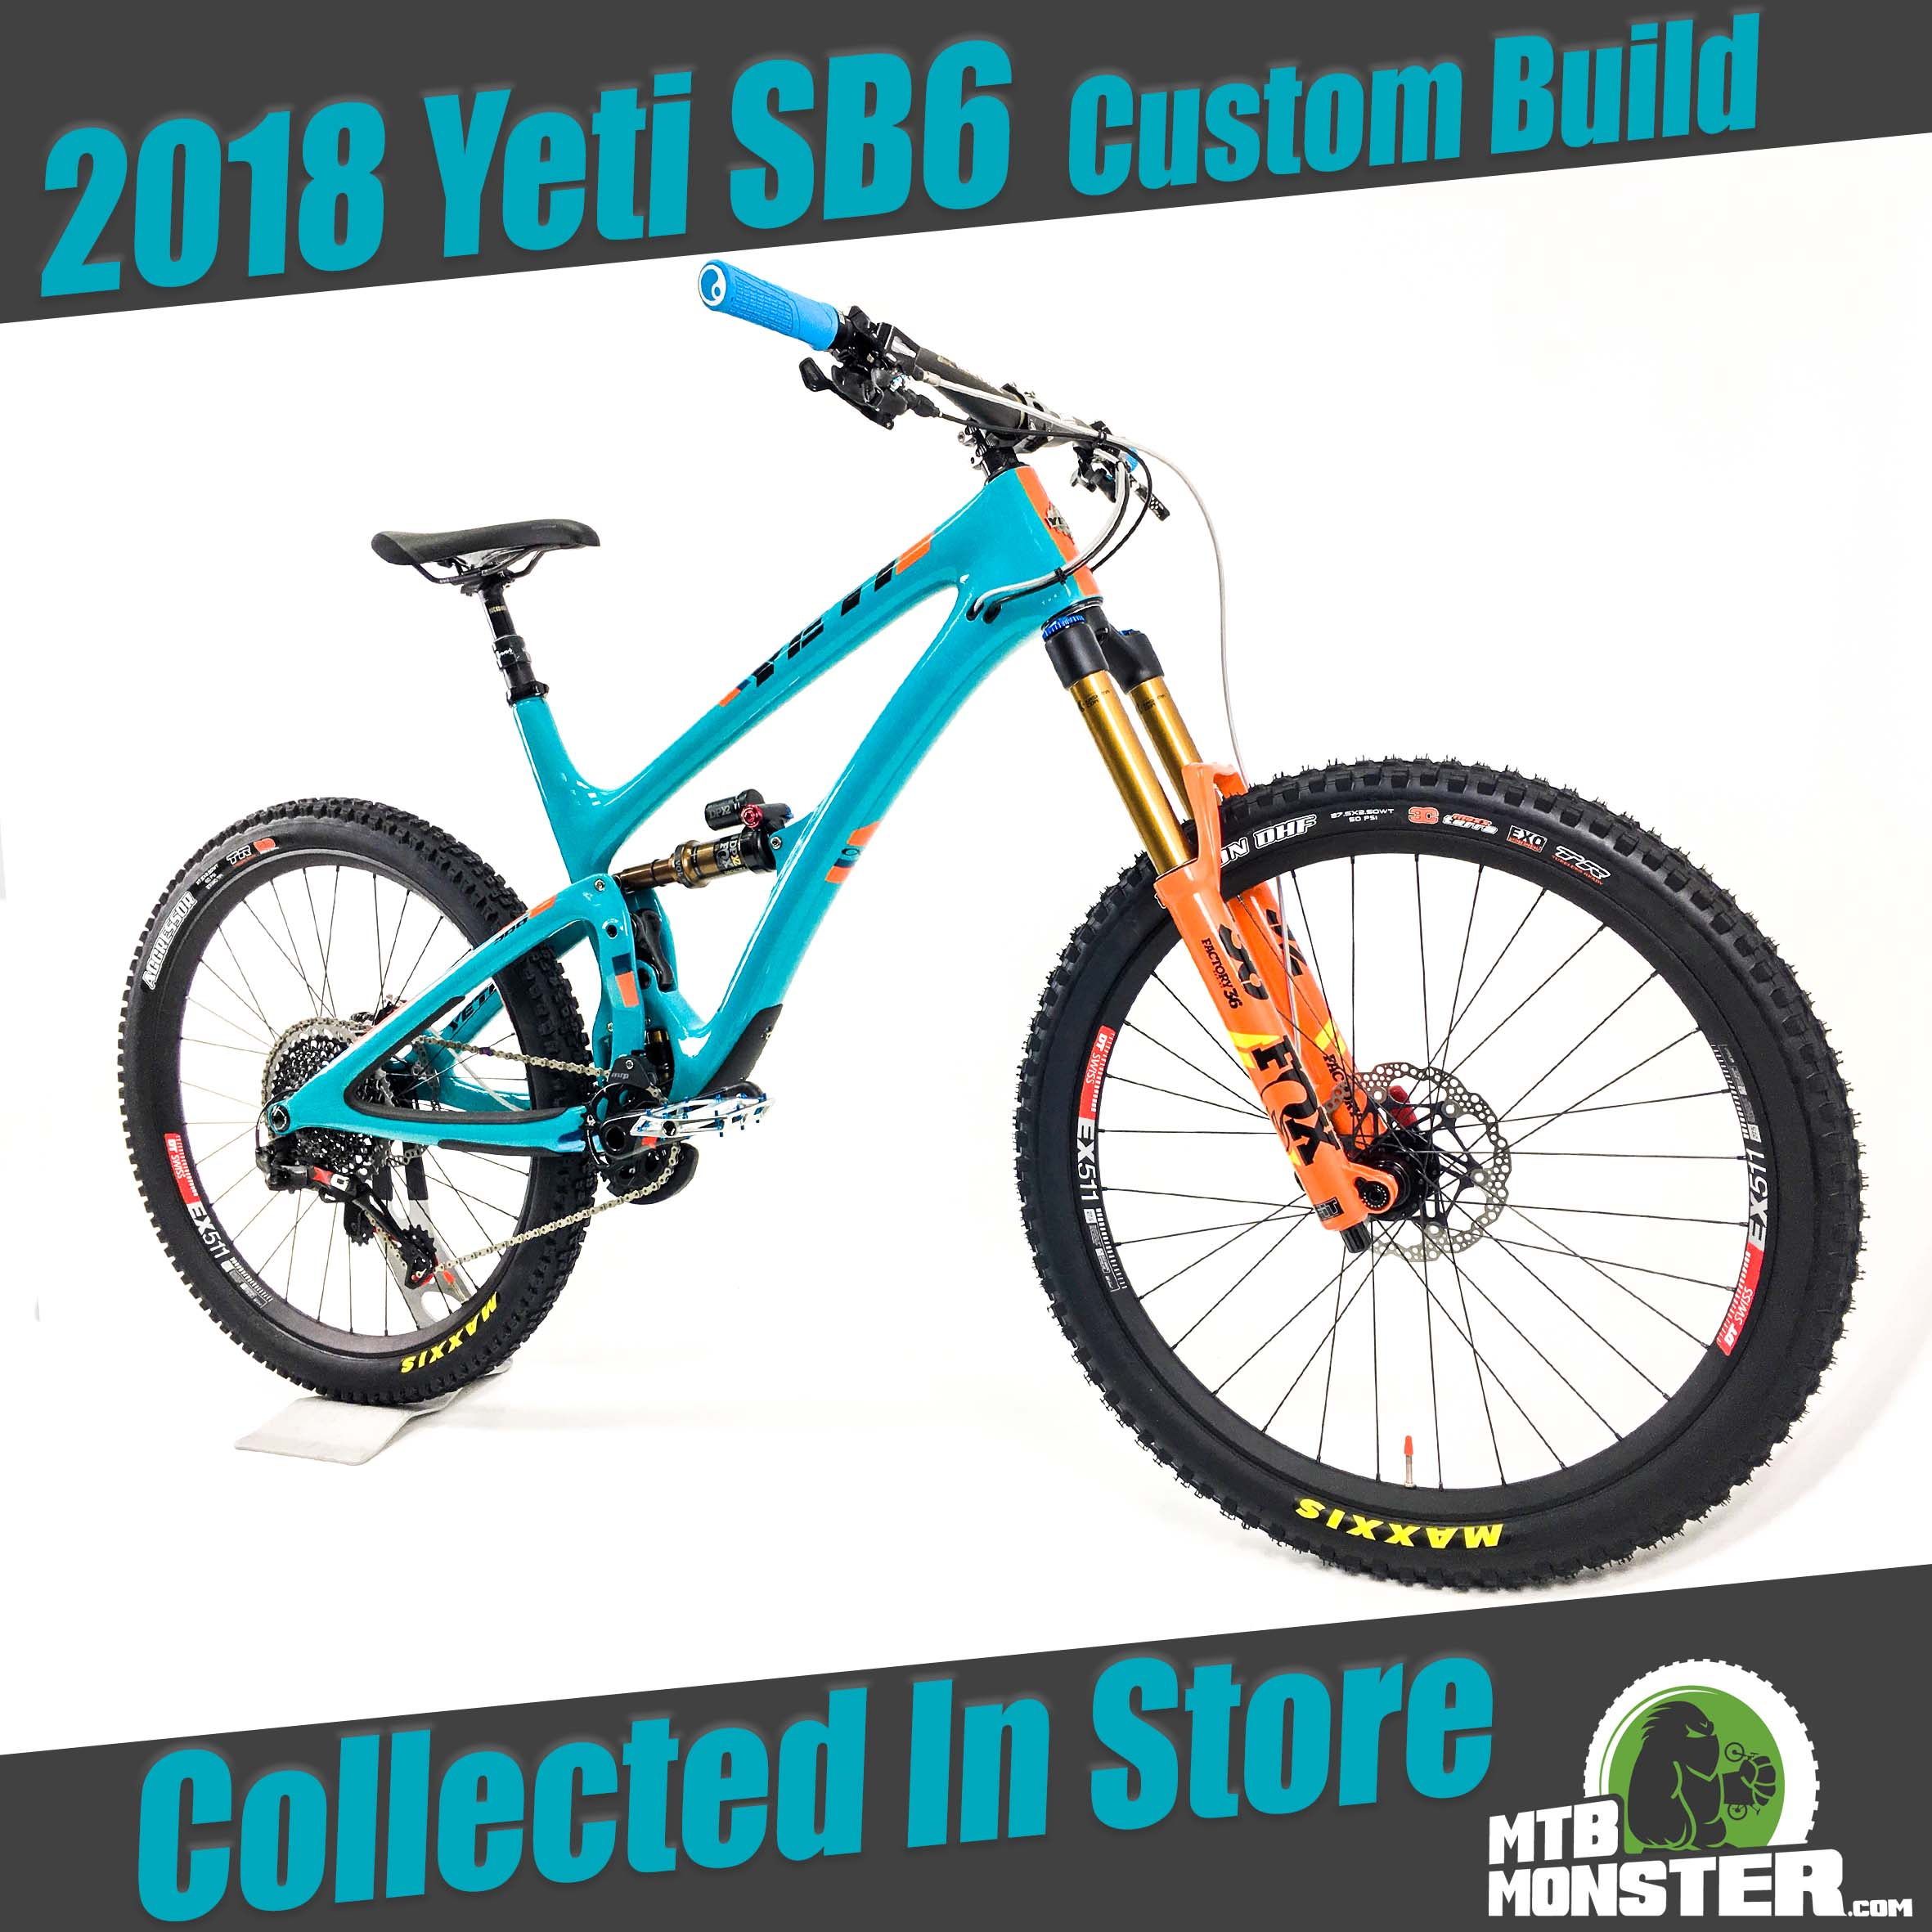 Yeti SB6 T-Series 2018 Custom Build